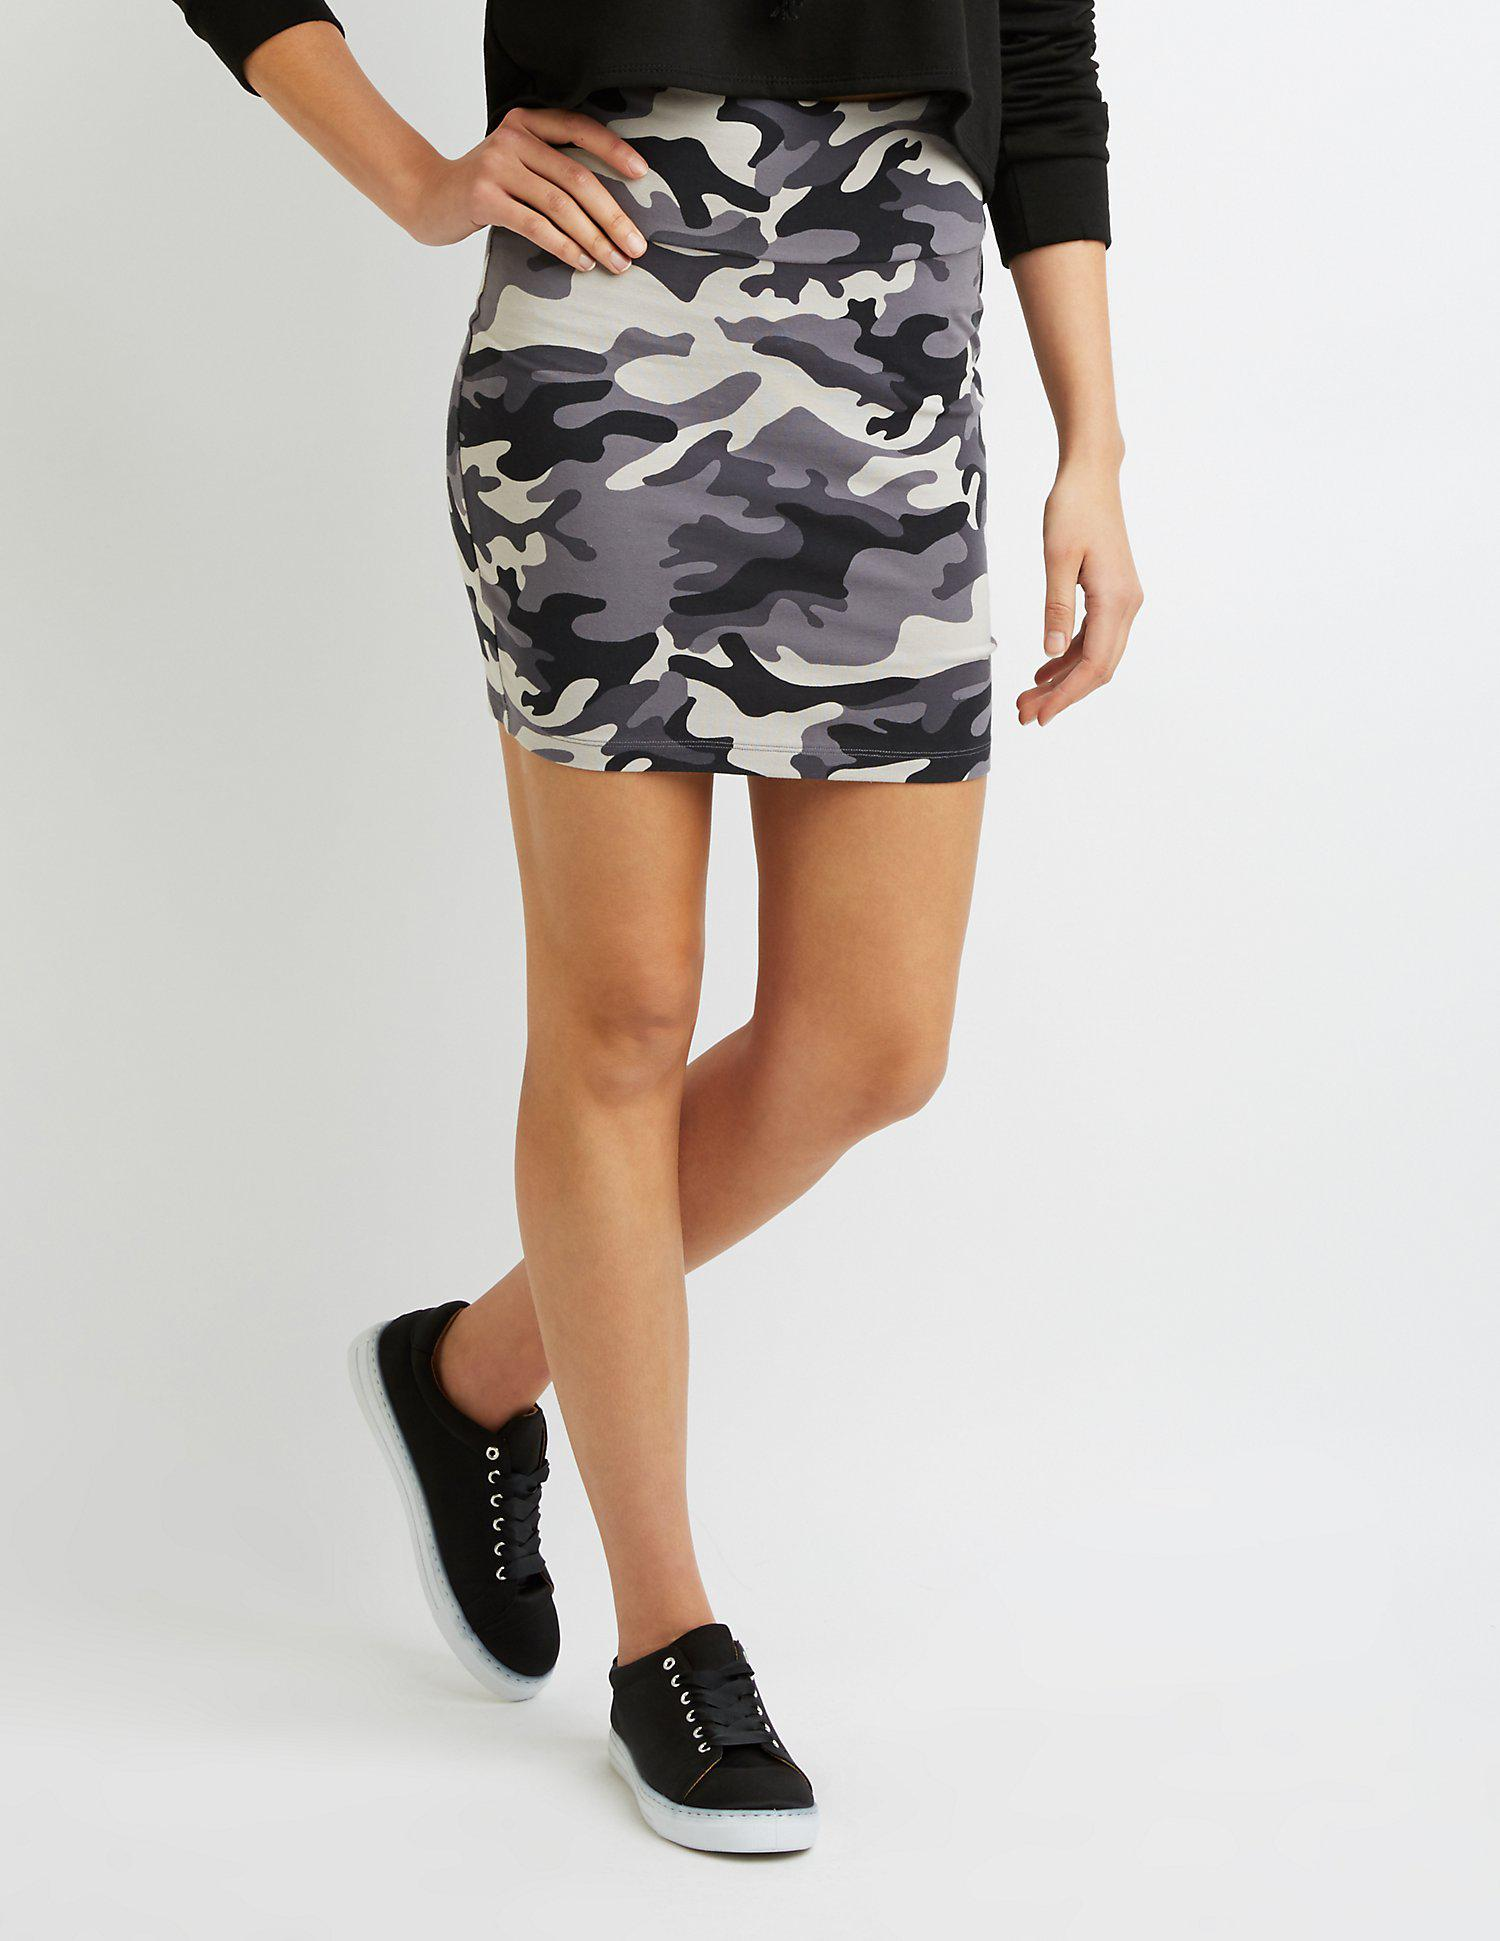 a5968d7ca1e75 Gallery. Previously sold at  Charlotte Russe · Women s Bodycon Skirts ...